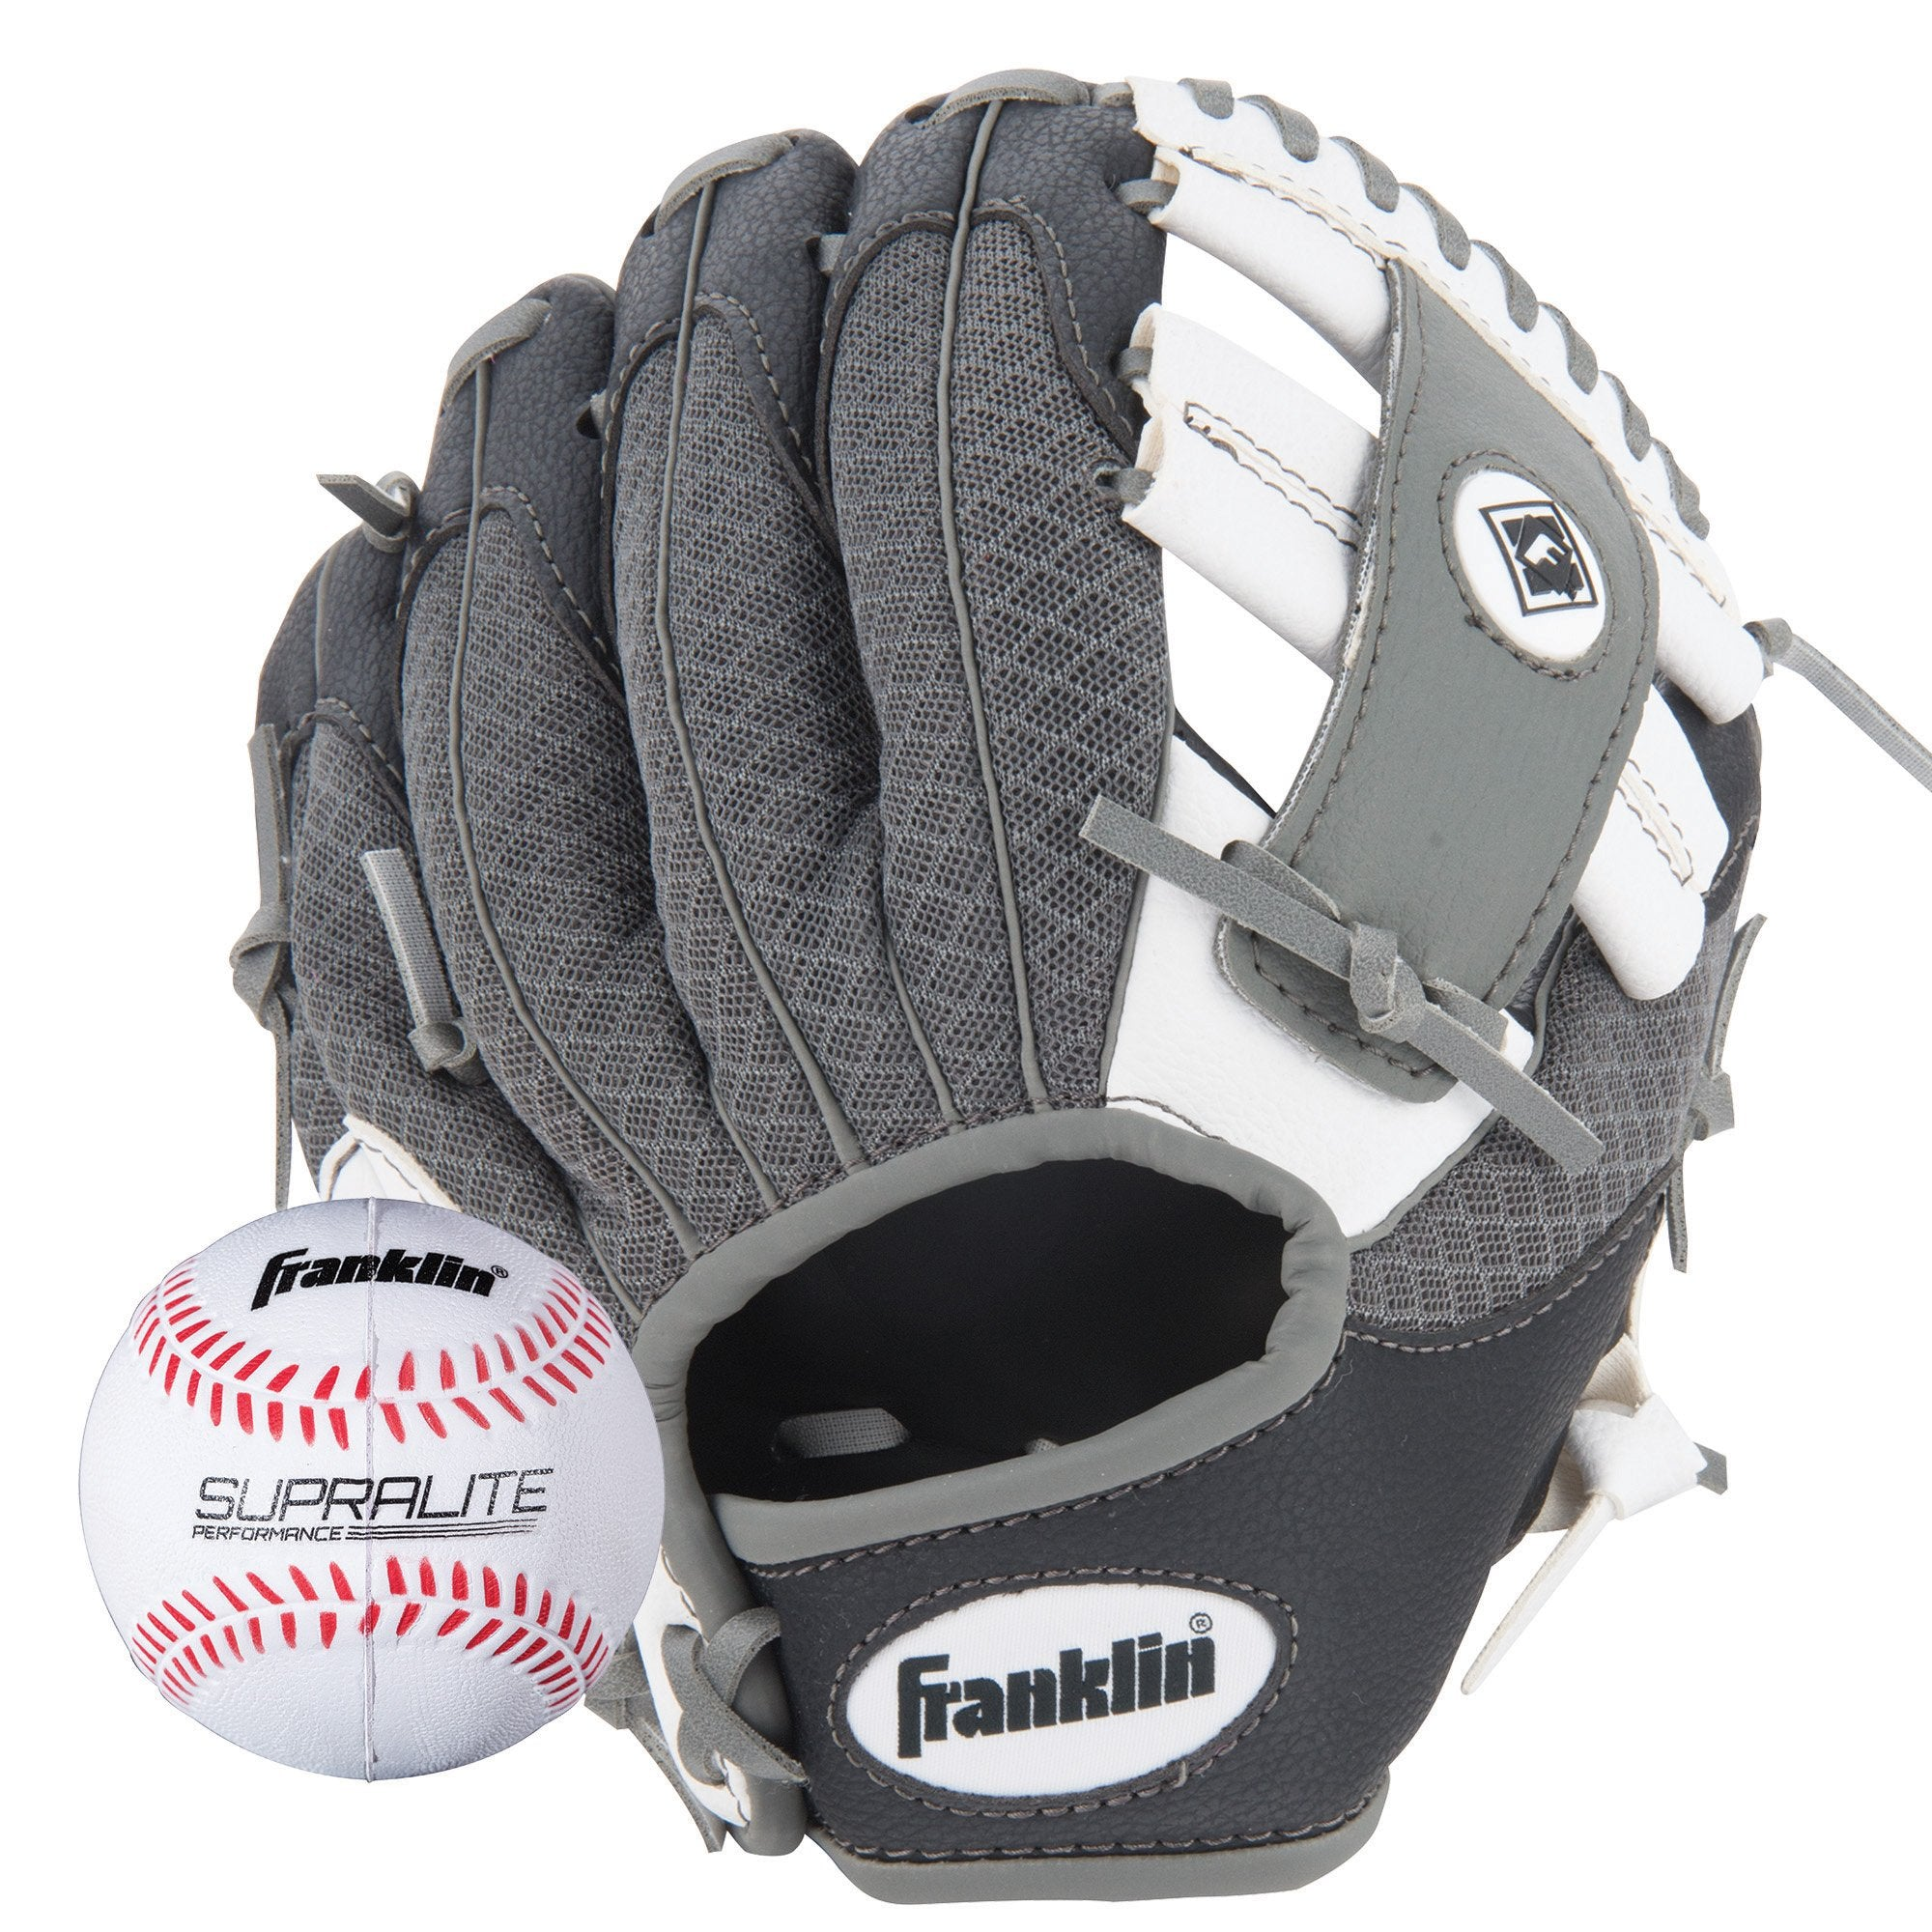 Franklin Sports Teeball Glove - Left and Right Handed Youth Fielding Glove - Synthetic Leather Baseball Glove - Ready To Play Glove - Black/White/Gray with Ball - Ctfitnesswear